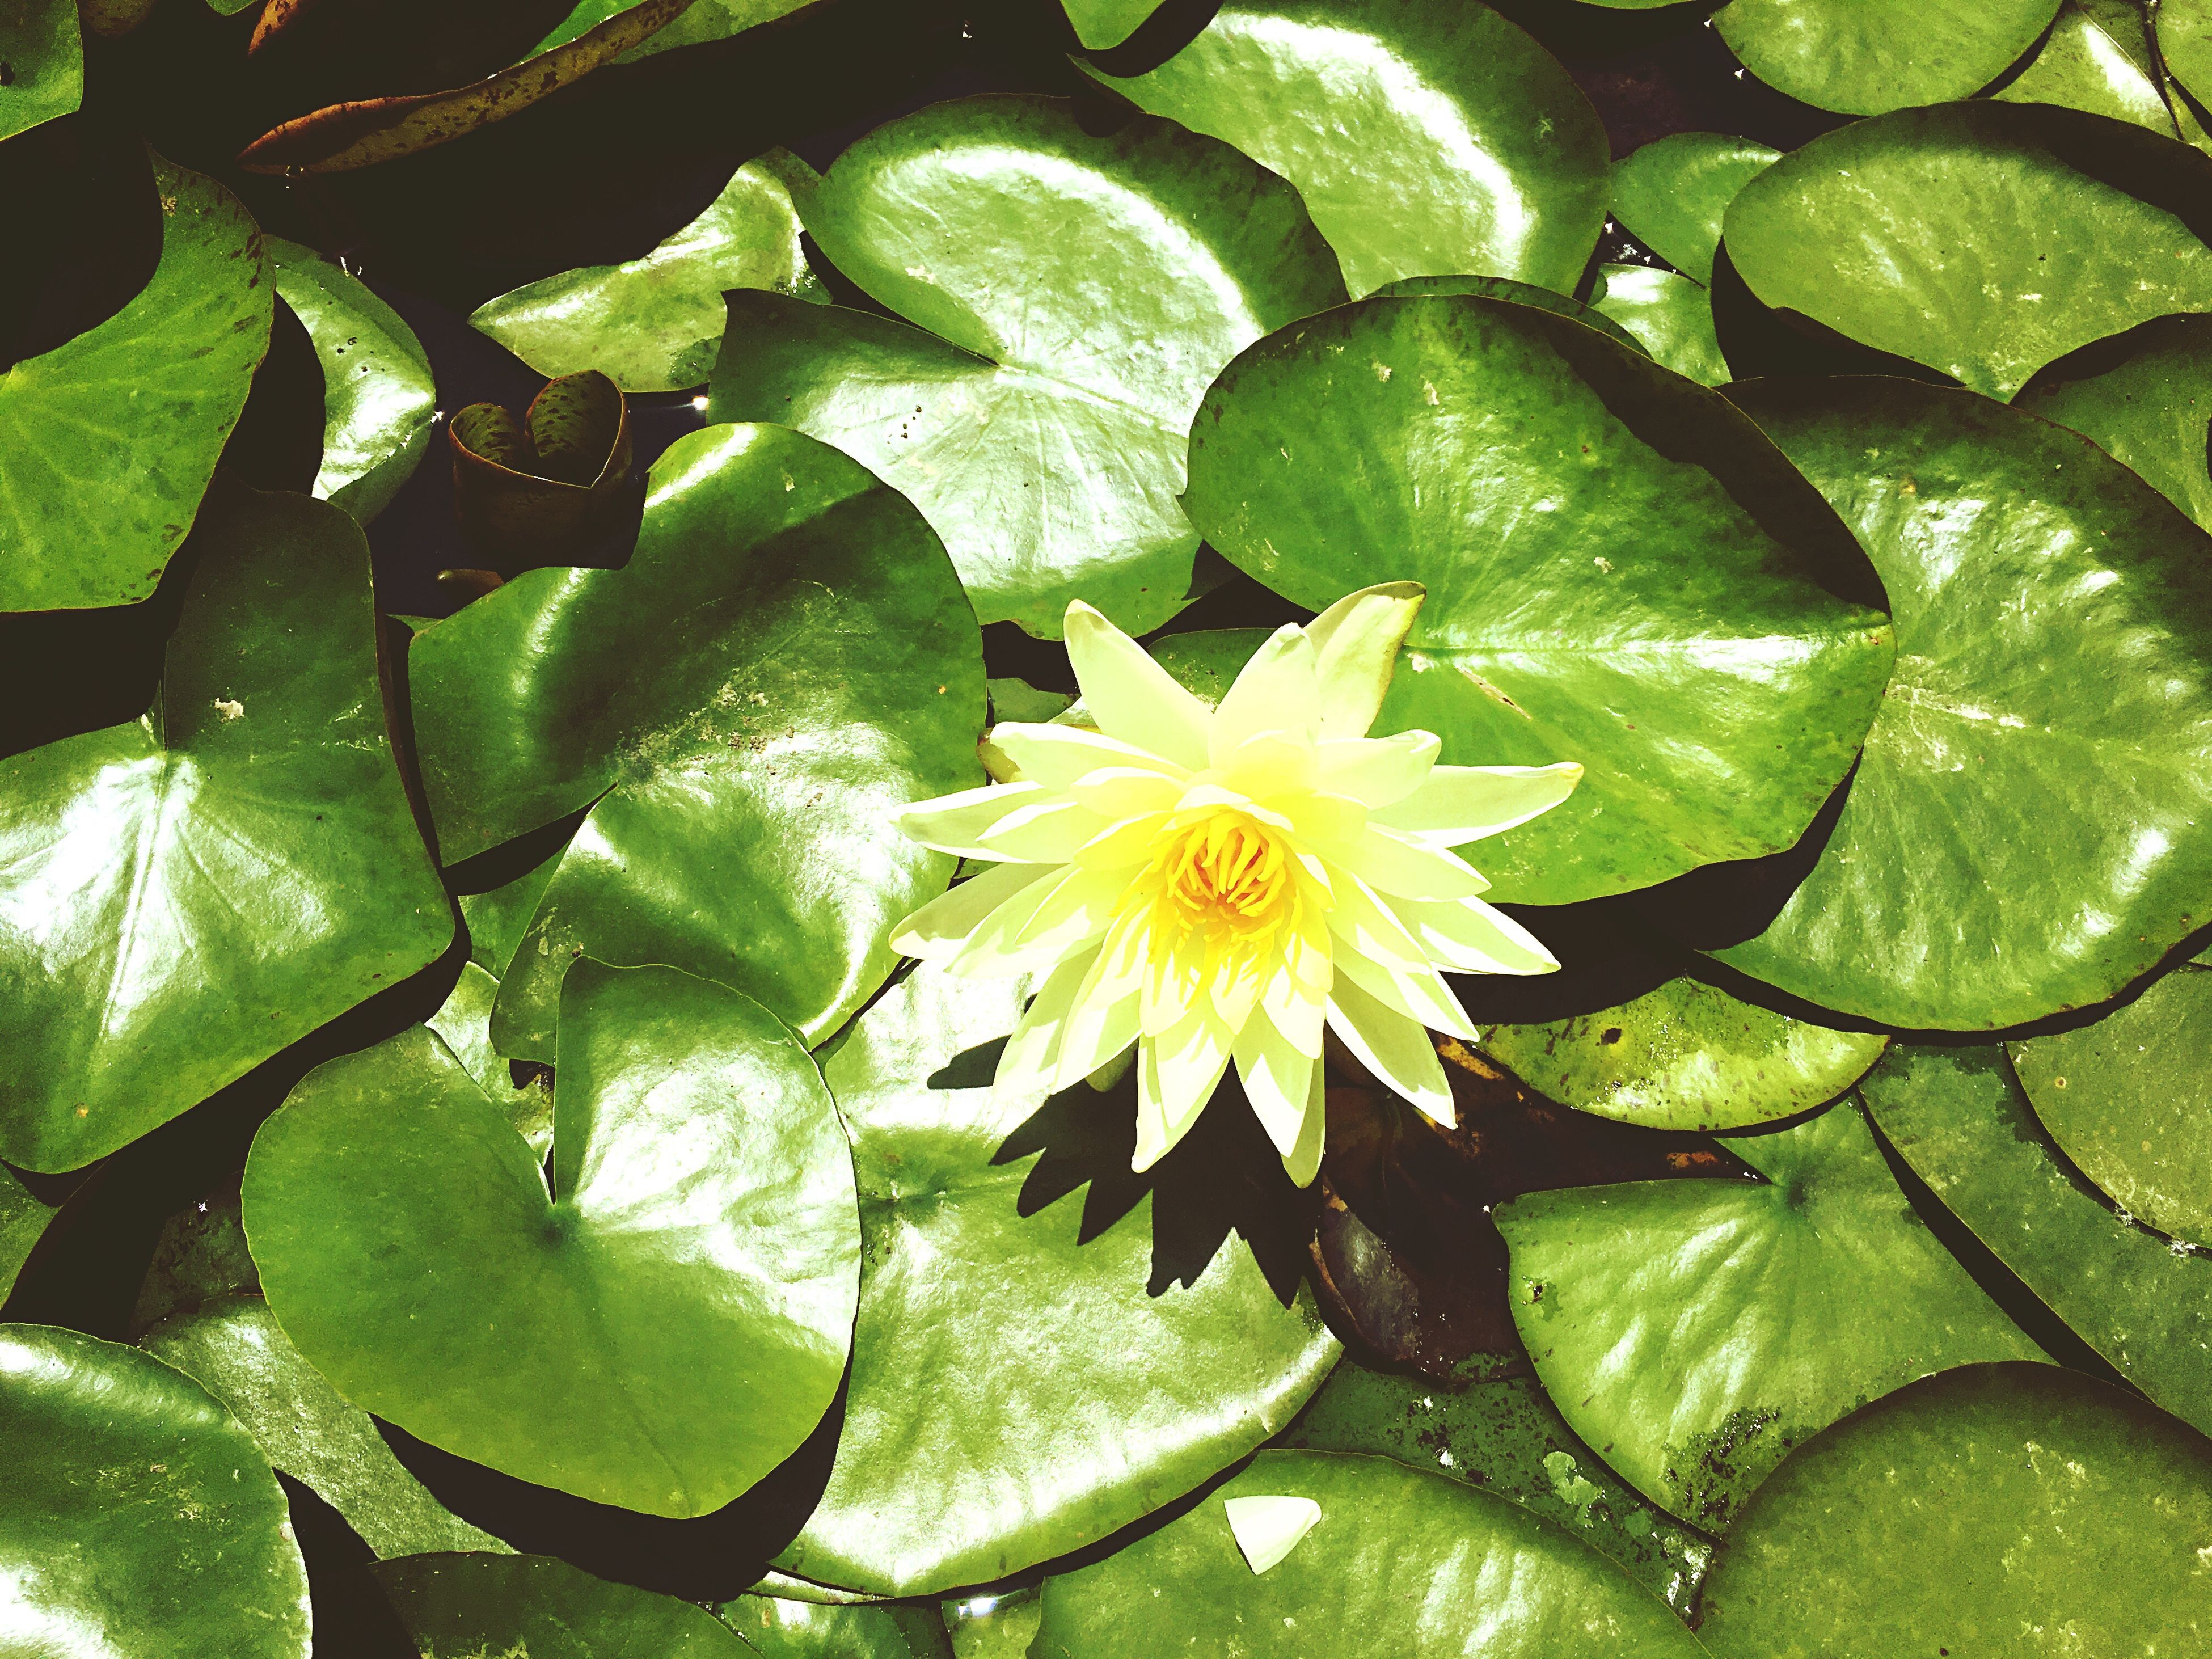 leaf, water, freshness, flower, growth, fragility, green color, beauty in nature, petal, nature, high angle view, water lily, pond, plant, floating on water, flower head, wet, close-up, drop, single flower